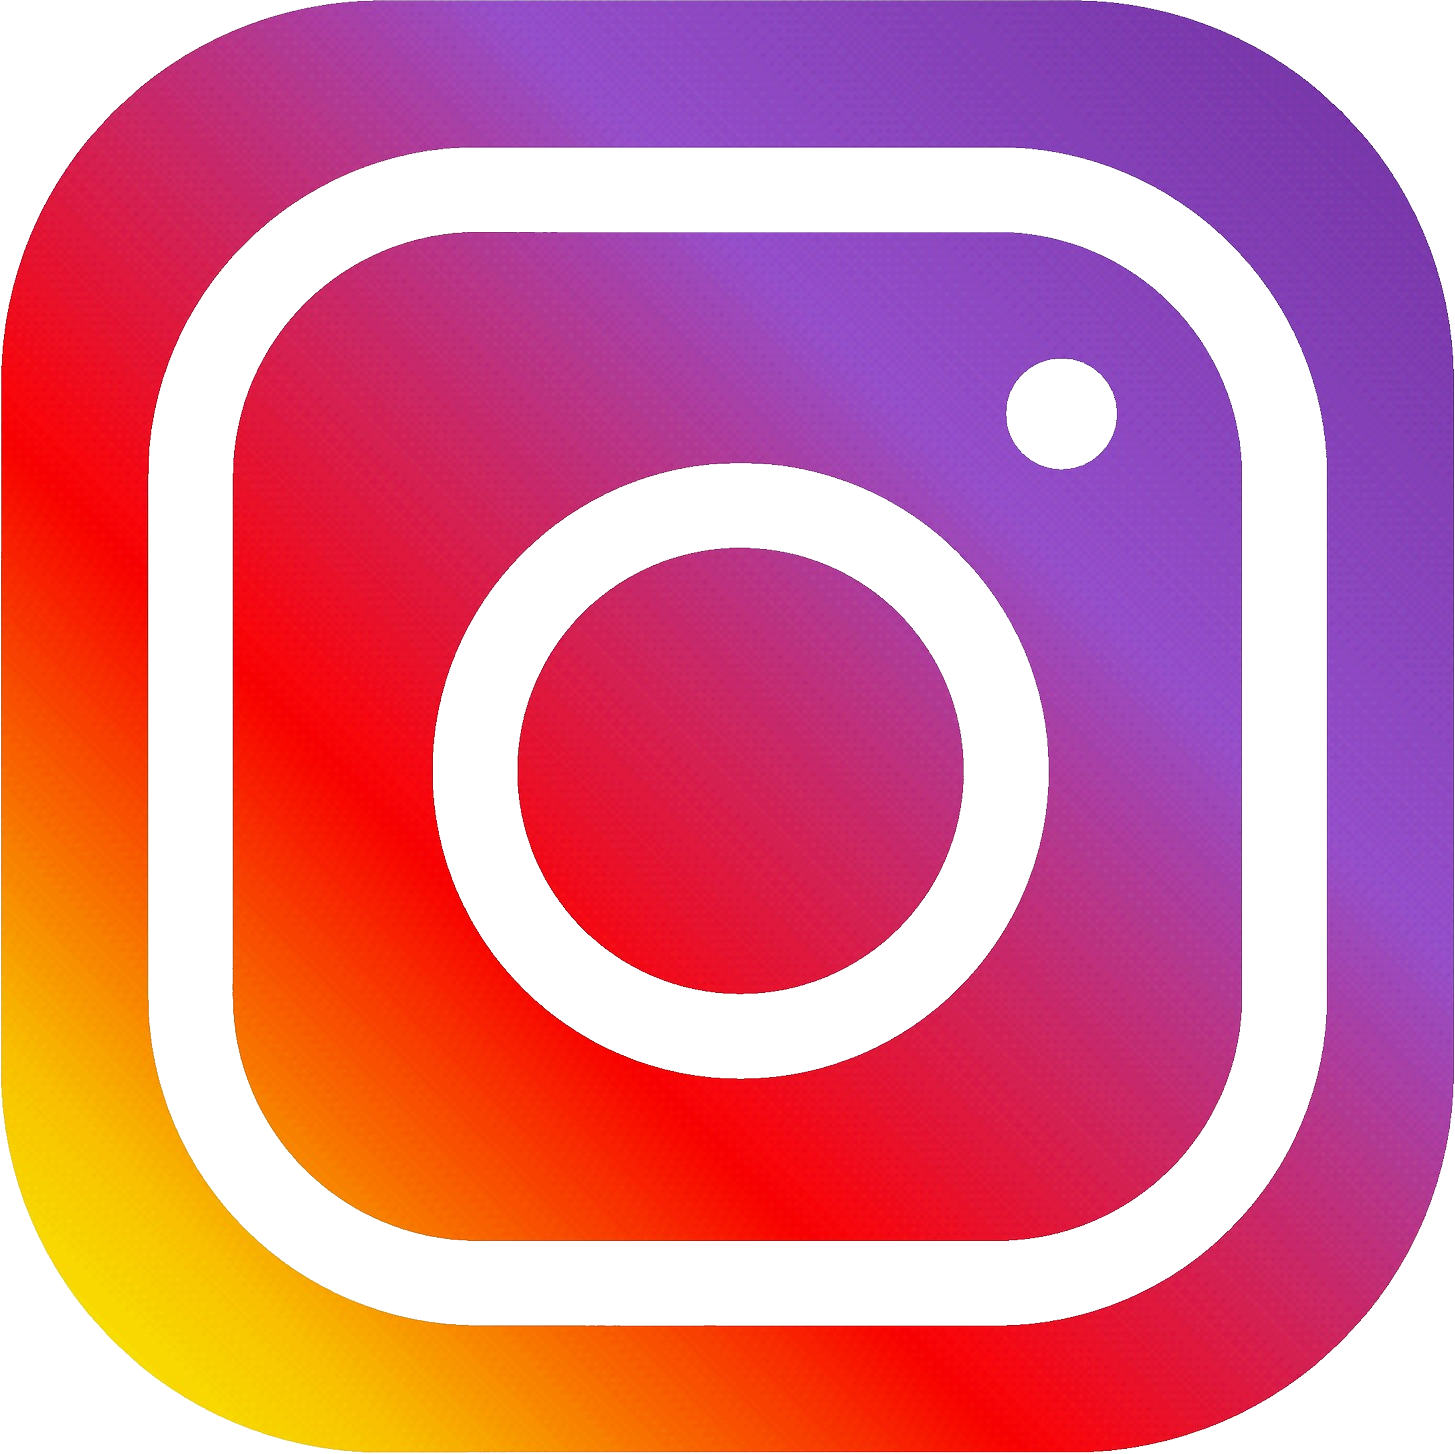 Instagram logo. Take a mini-tour of the CIMS stacks in Van Pelt!